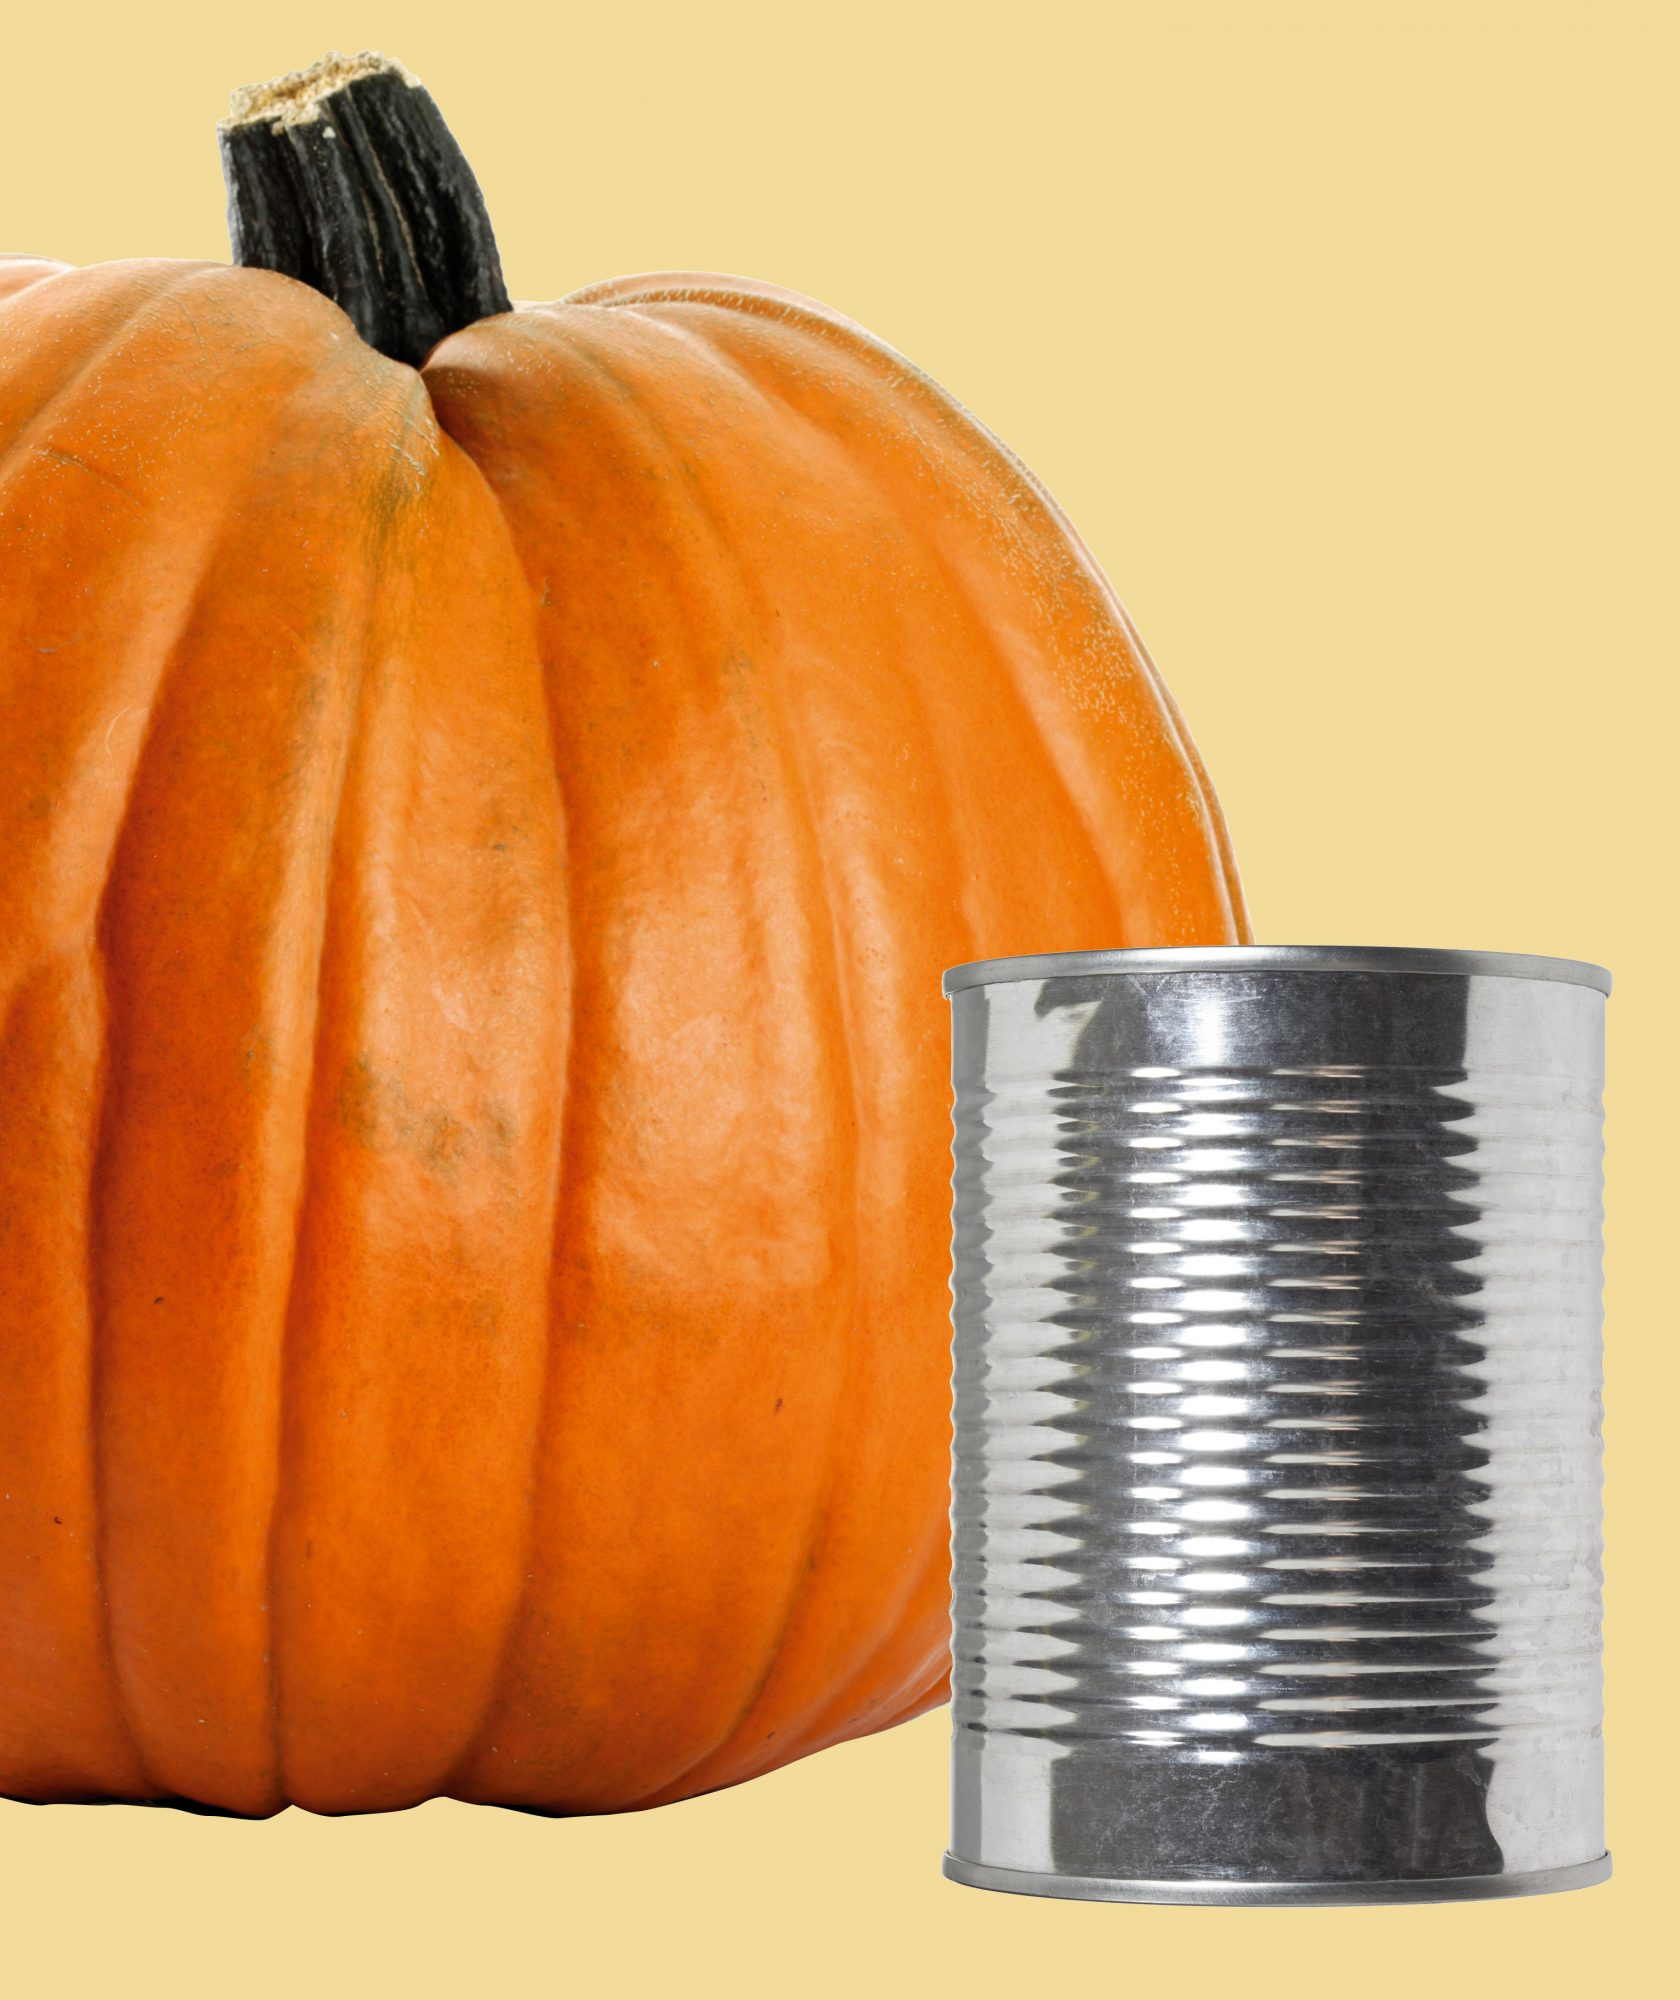 What's the Difference Between Canned Pumpkin and Pumpkin Pie Filling?